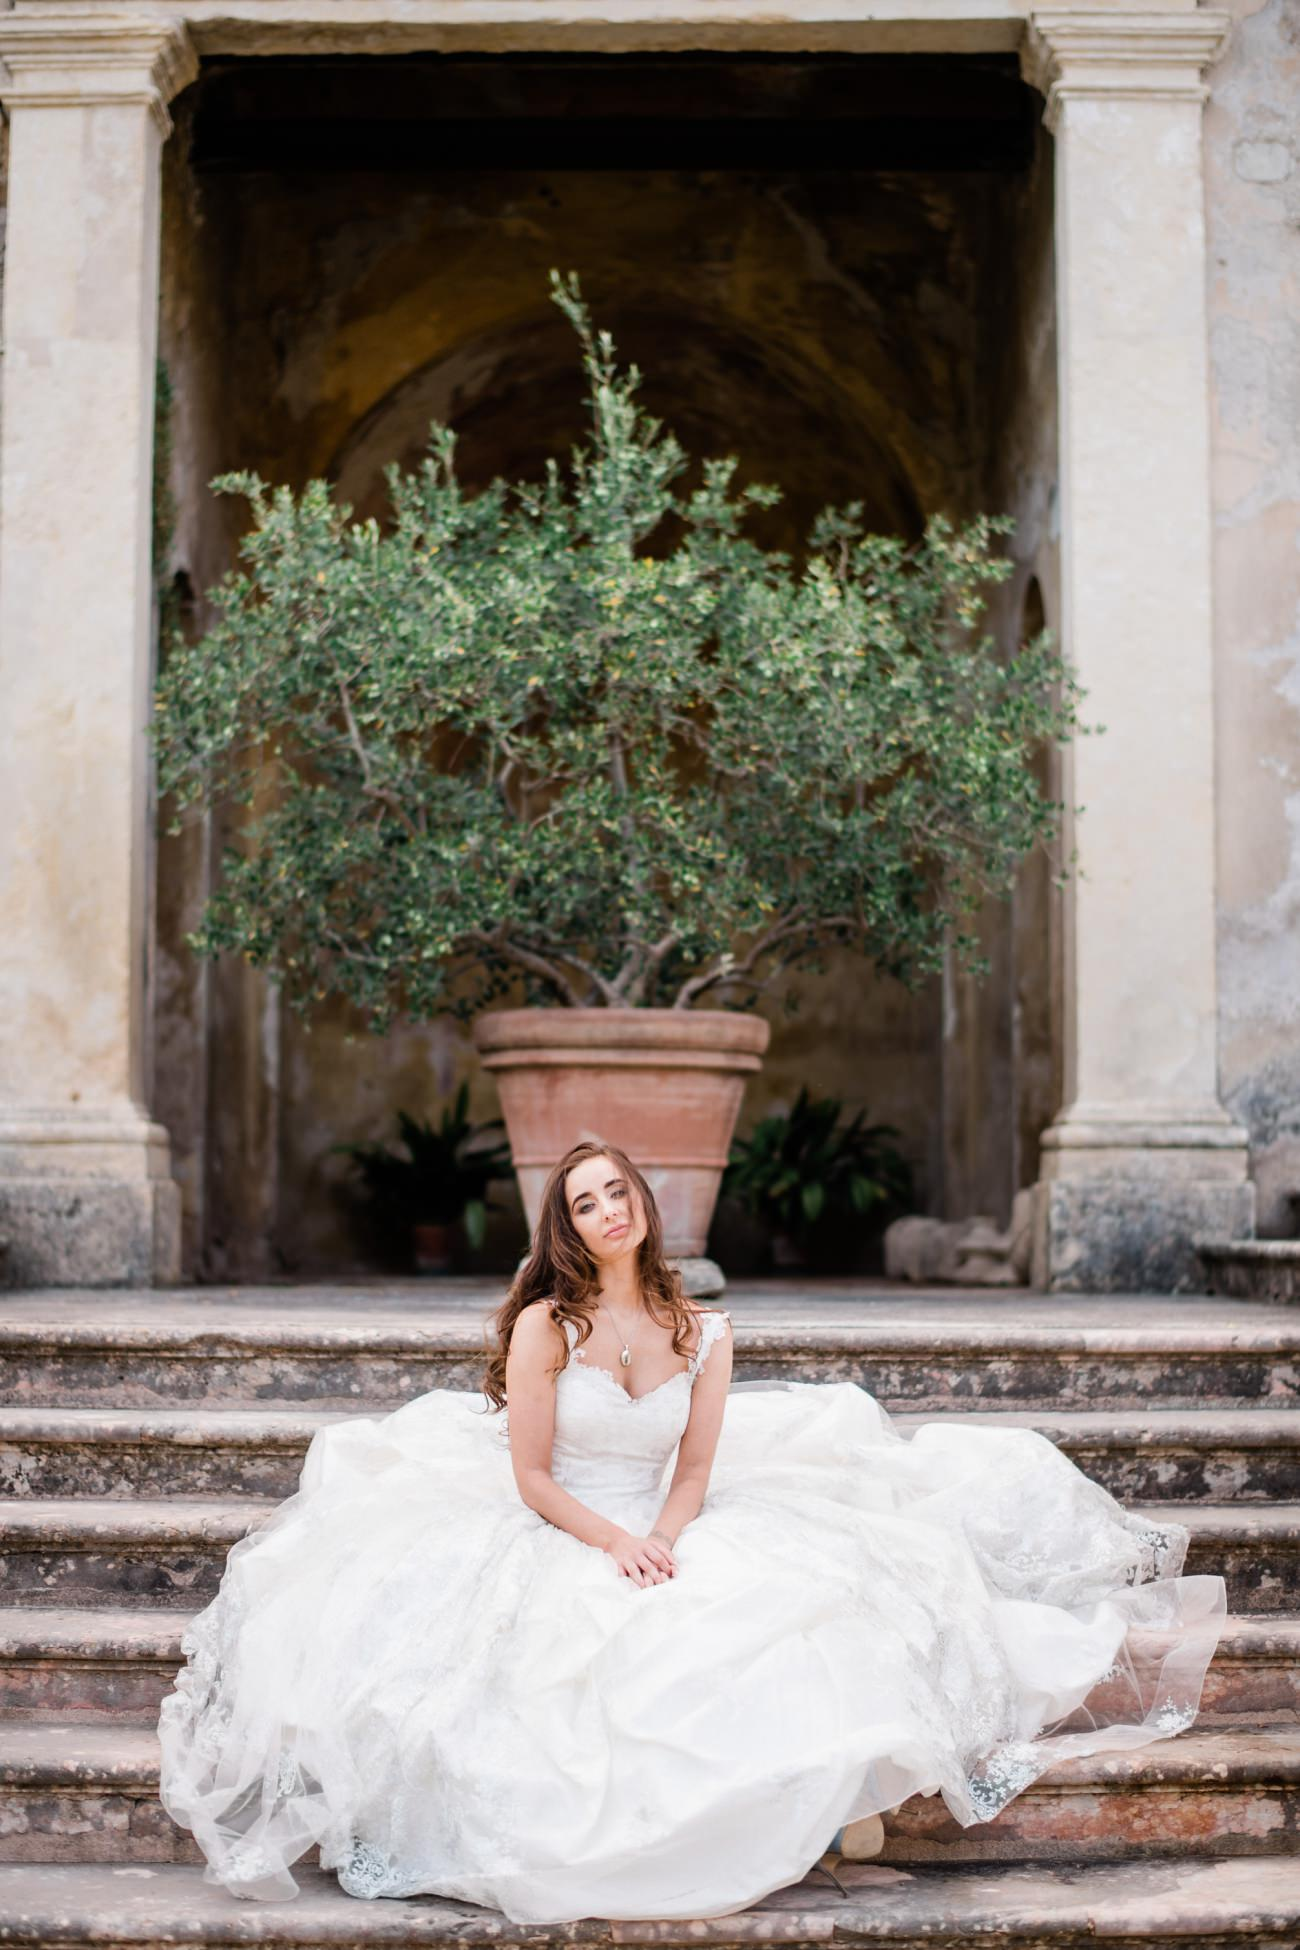 Wedding Photo Video Verona